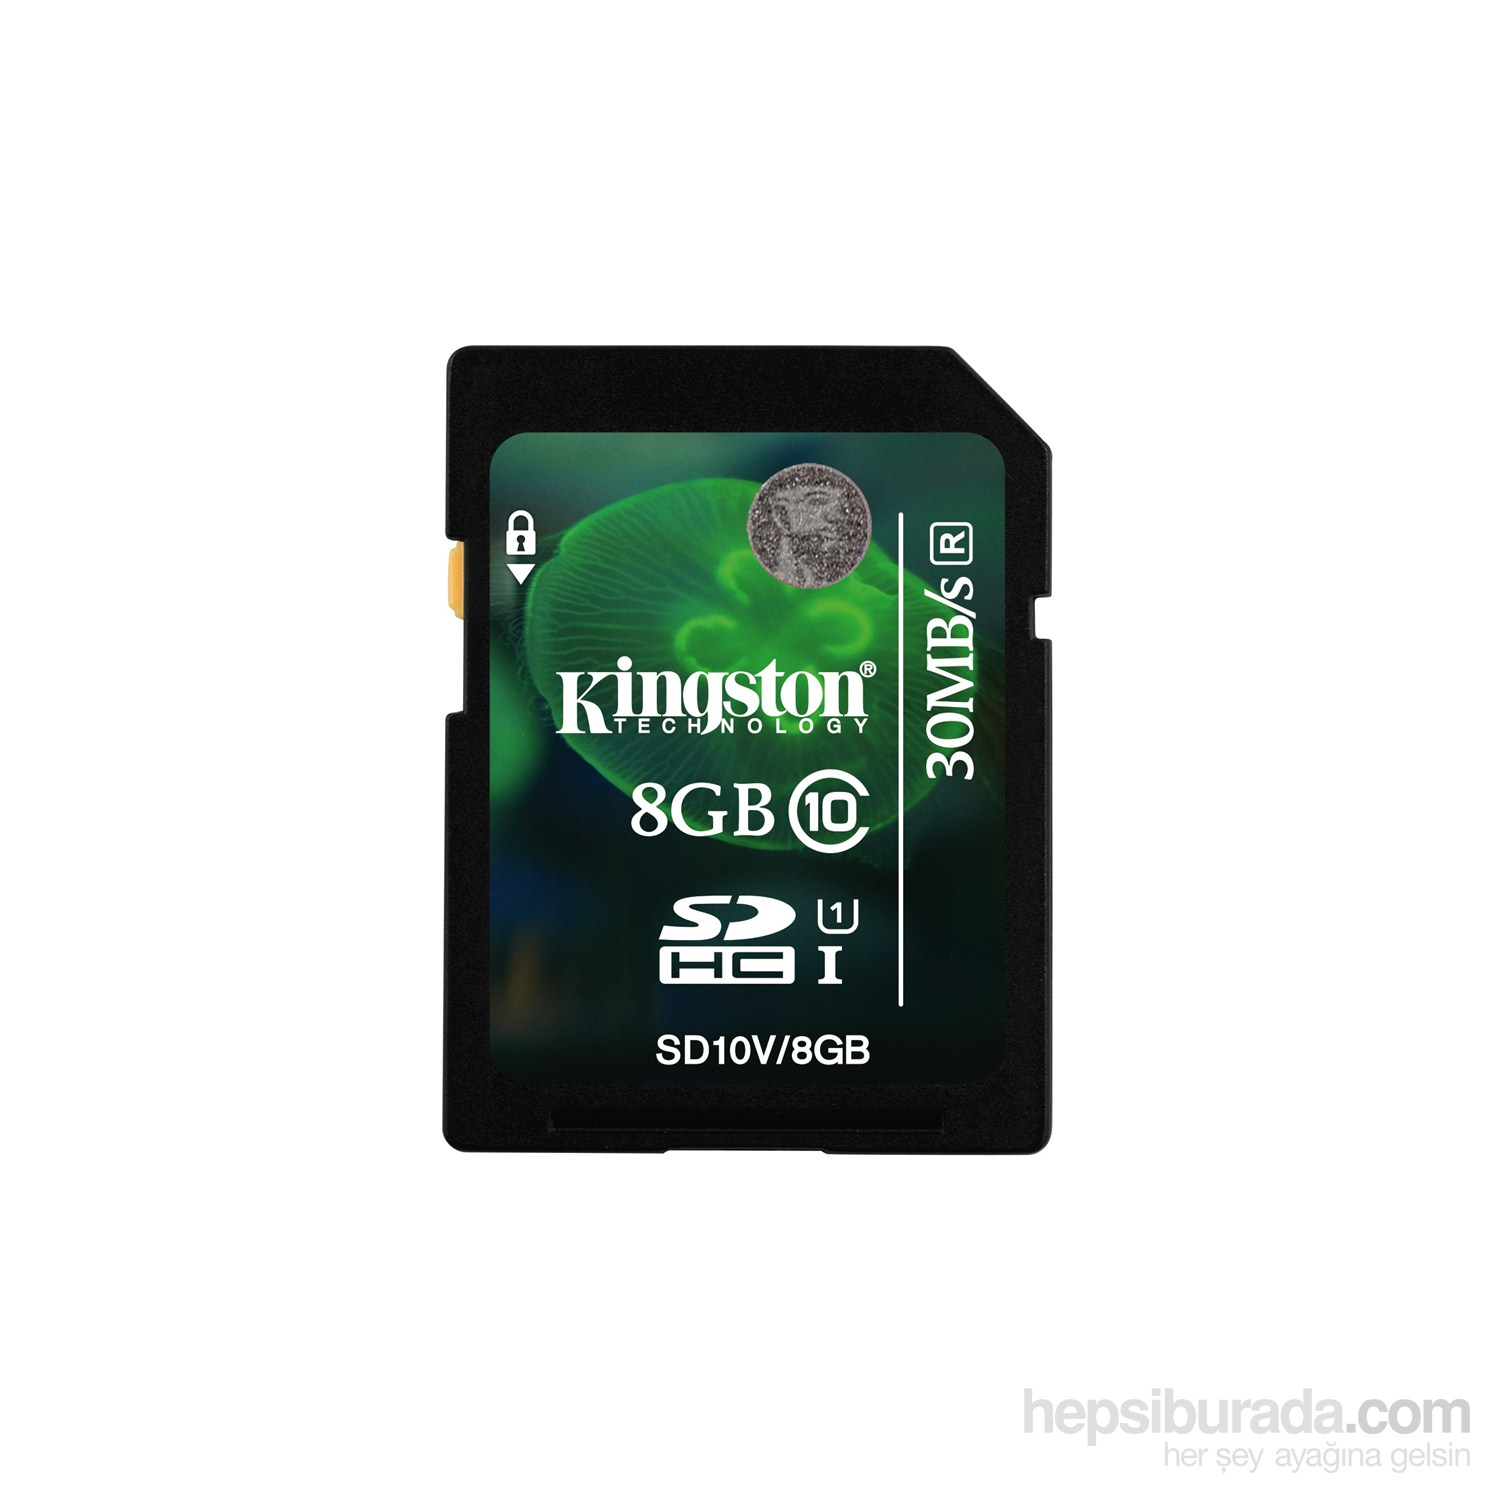 Kingston 8GB SDHC Class 10 UHS-I Hafıza Kartı SD10V/8GB